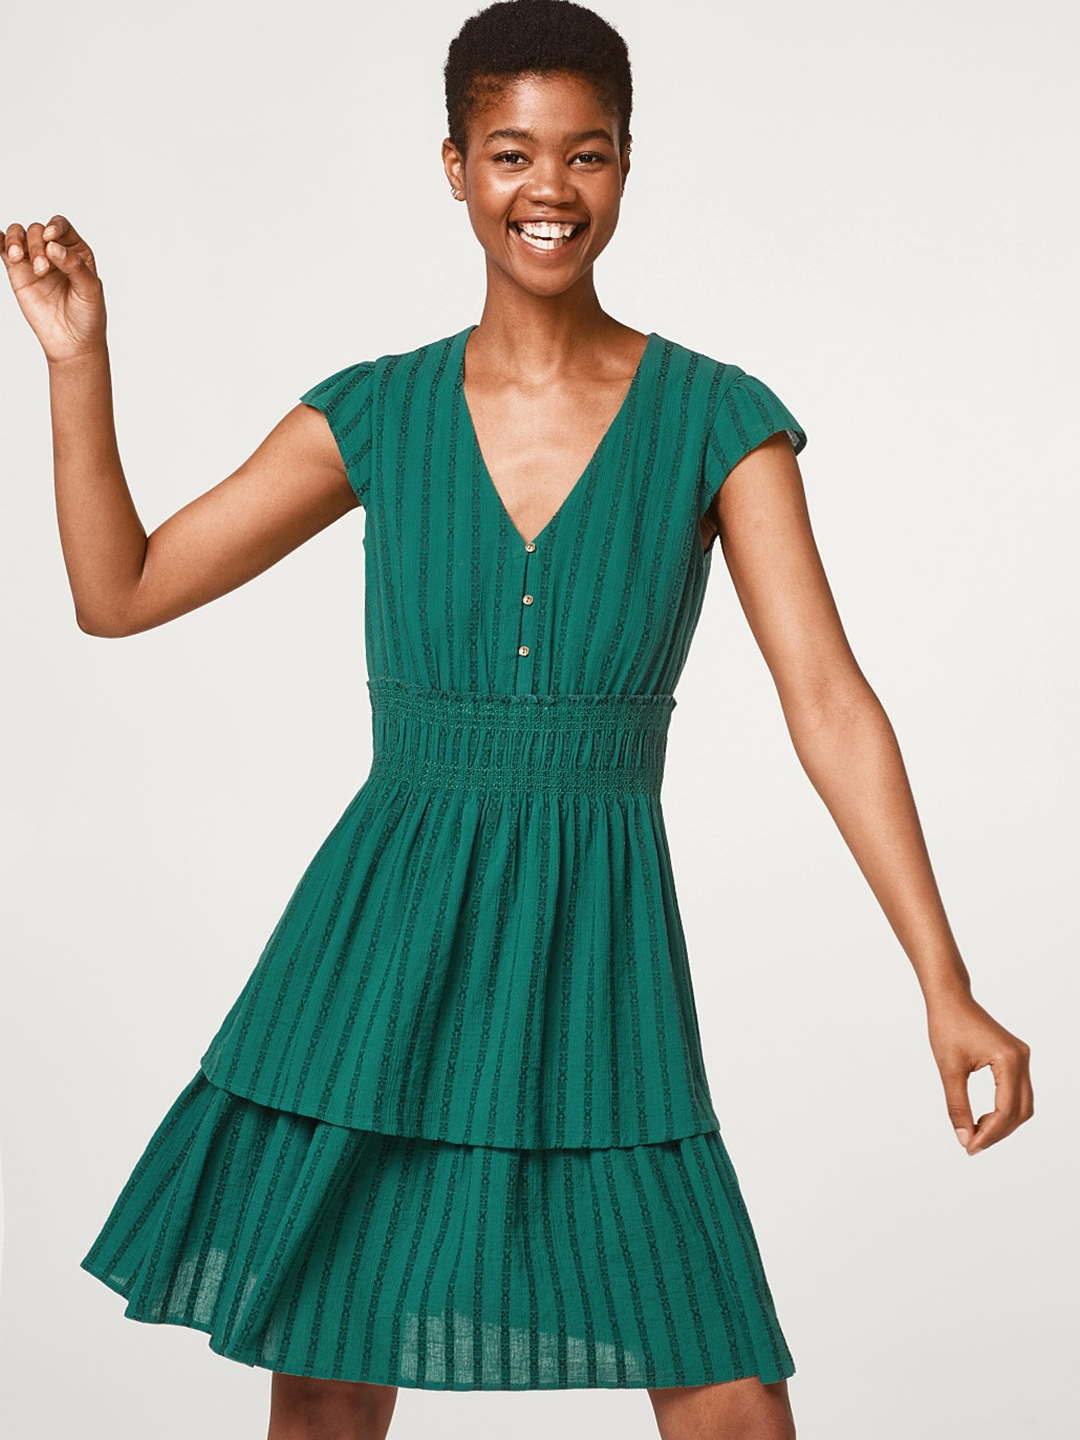 76879d5a4cf077 Buy ESPRIT Women Green Self Striped Fit   Flare Dress - Dresses for ...